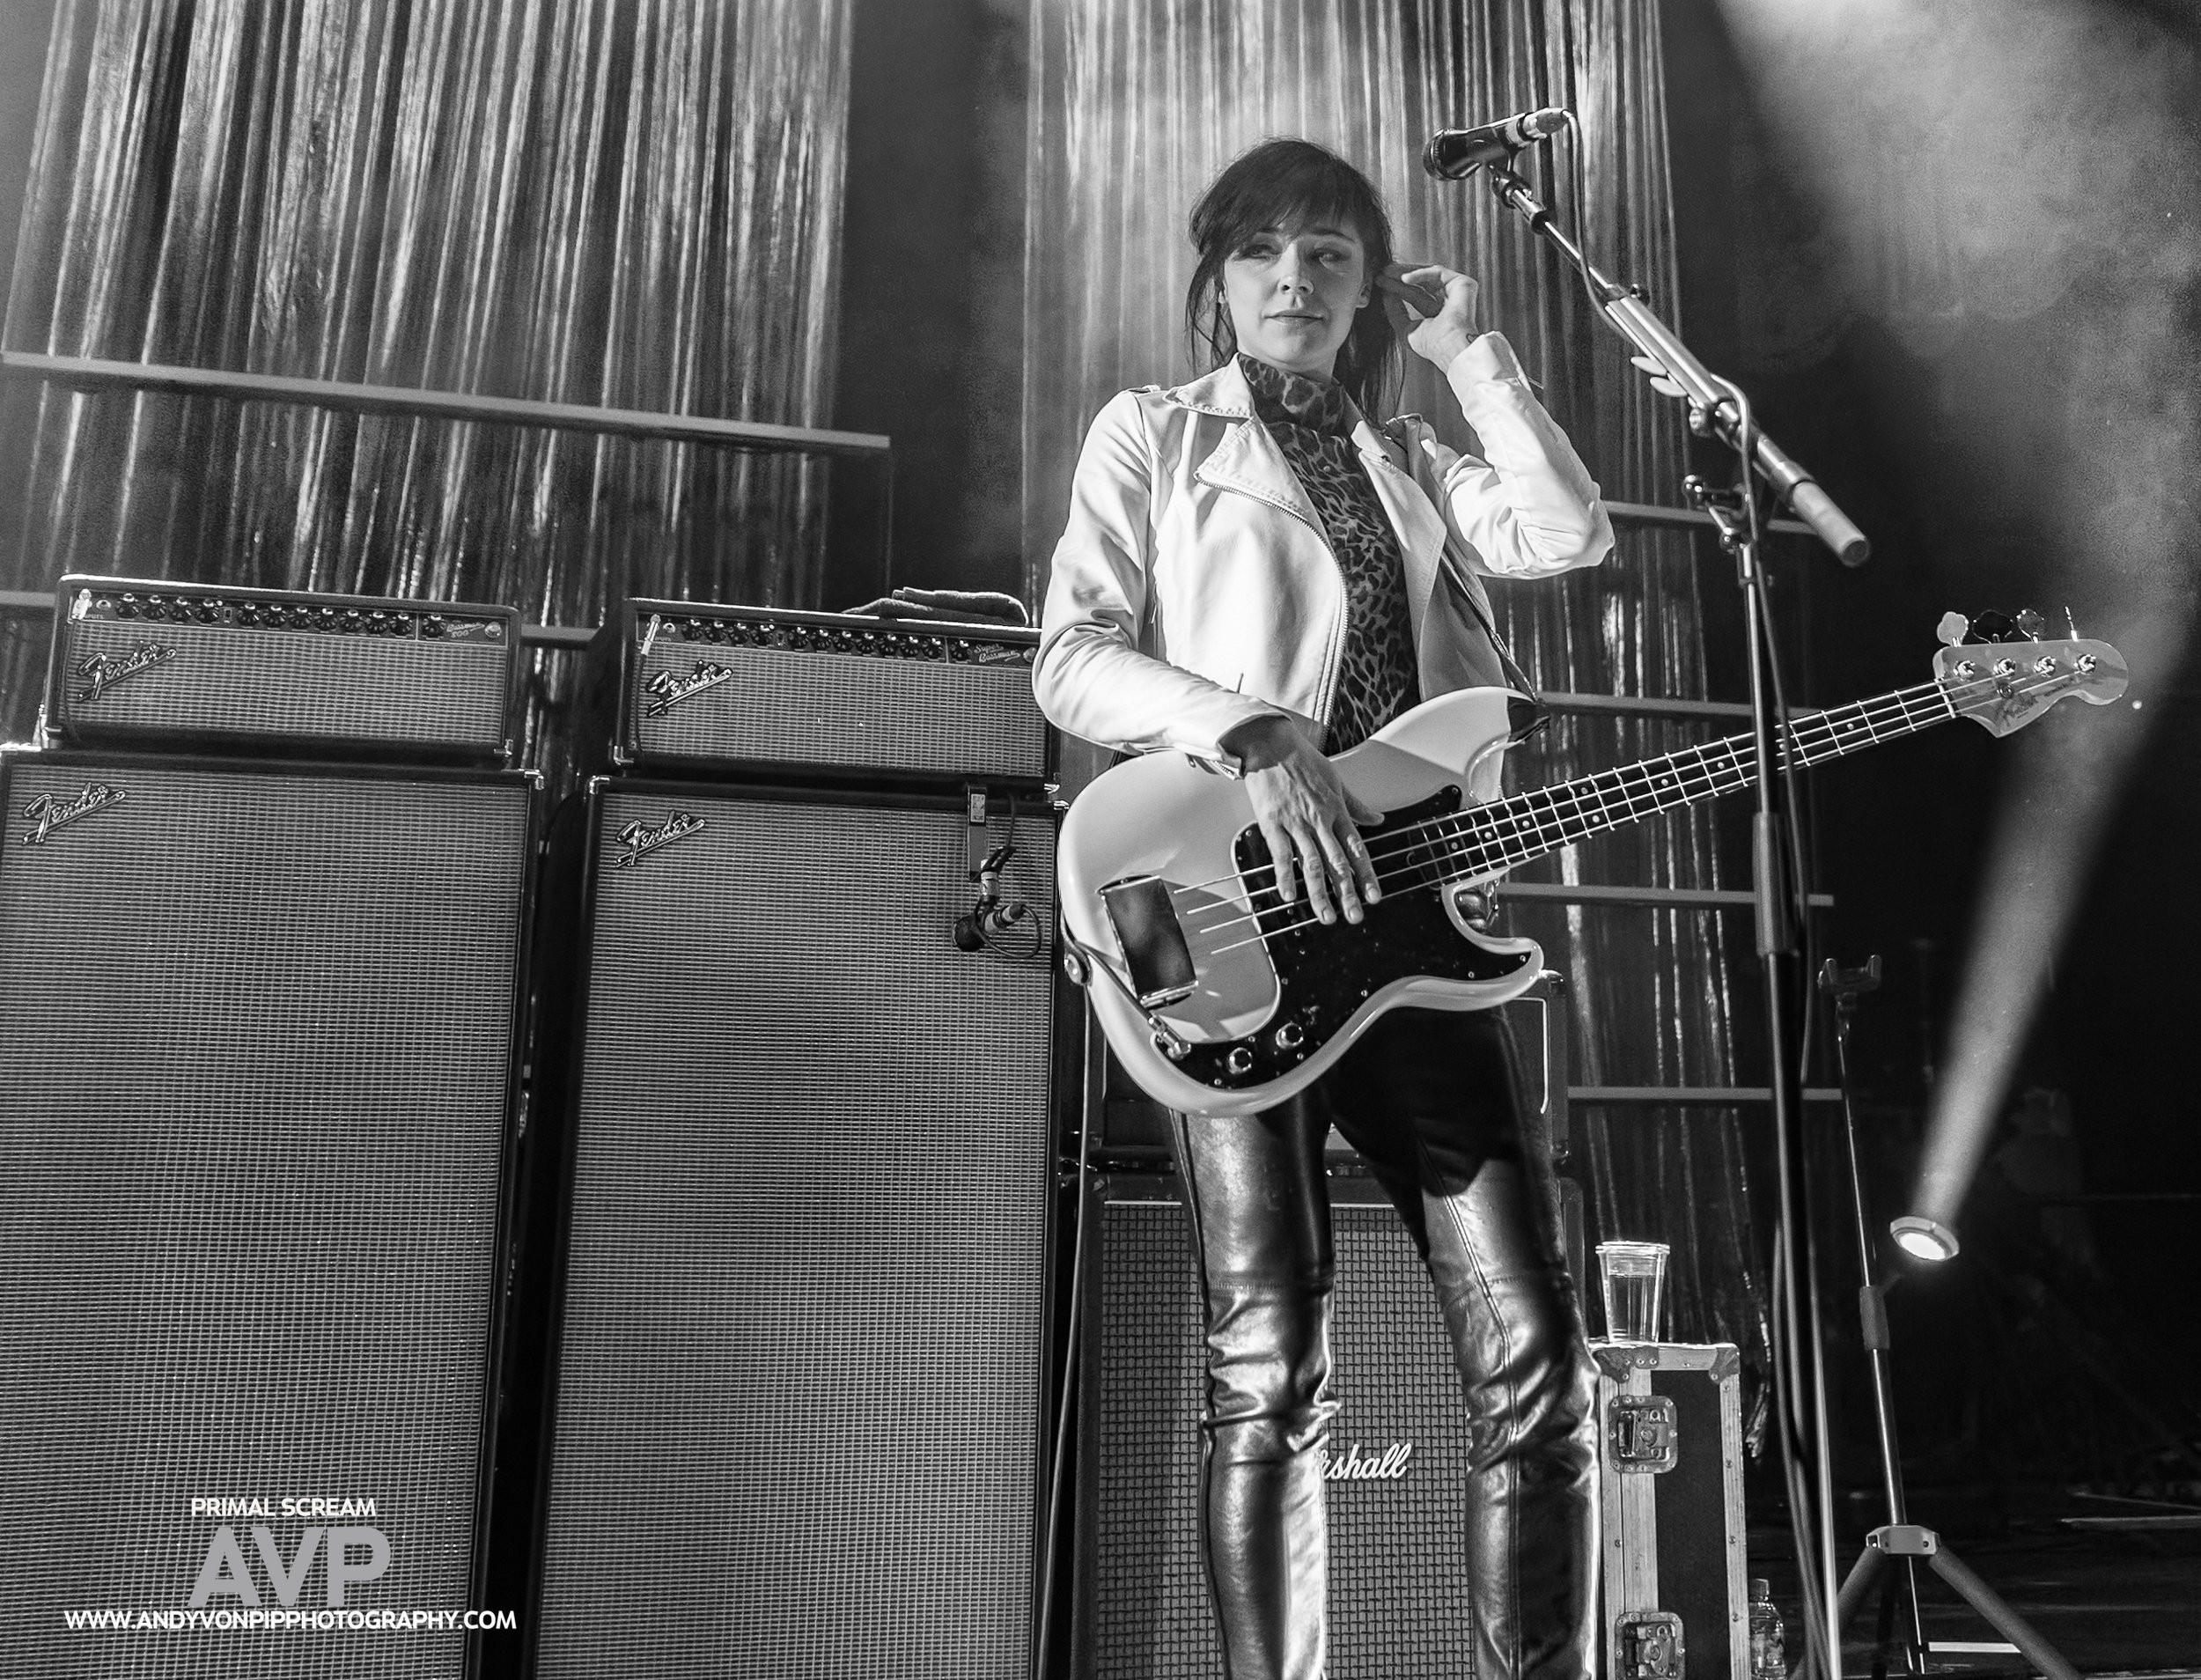 15-PRIMAL SCREAM - LIVERPOOL - 27.11.16 -Andy Von Pip.jpg